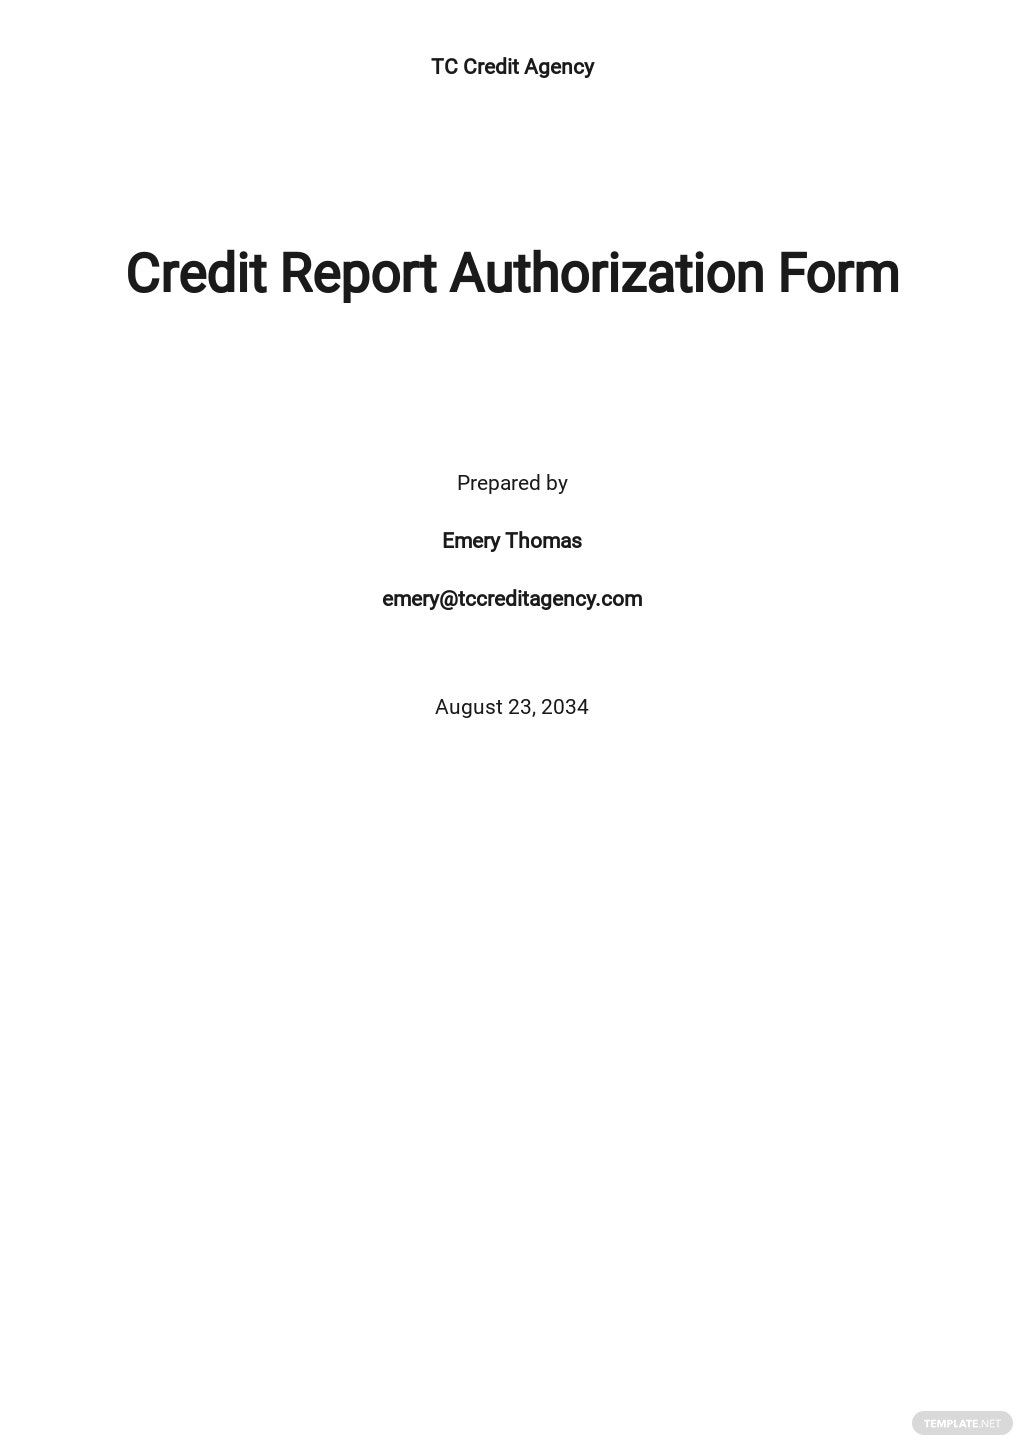 Credit Report Authorization Form Template